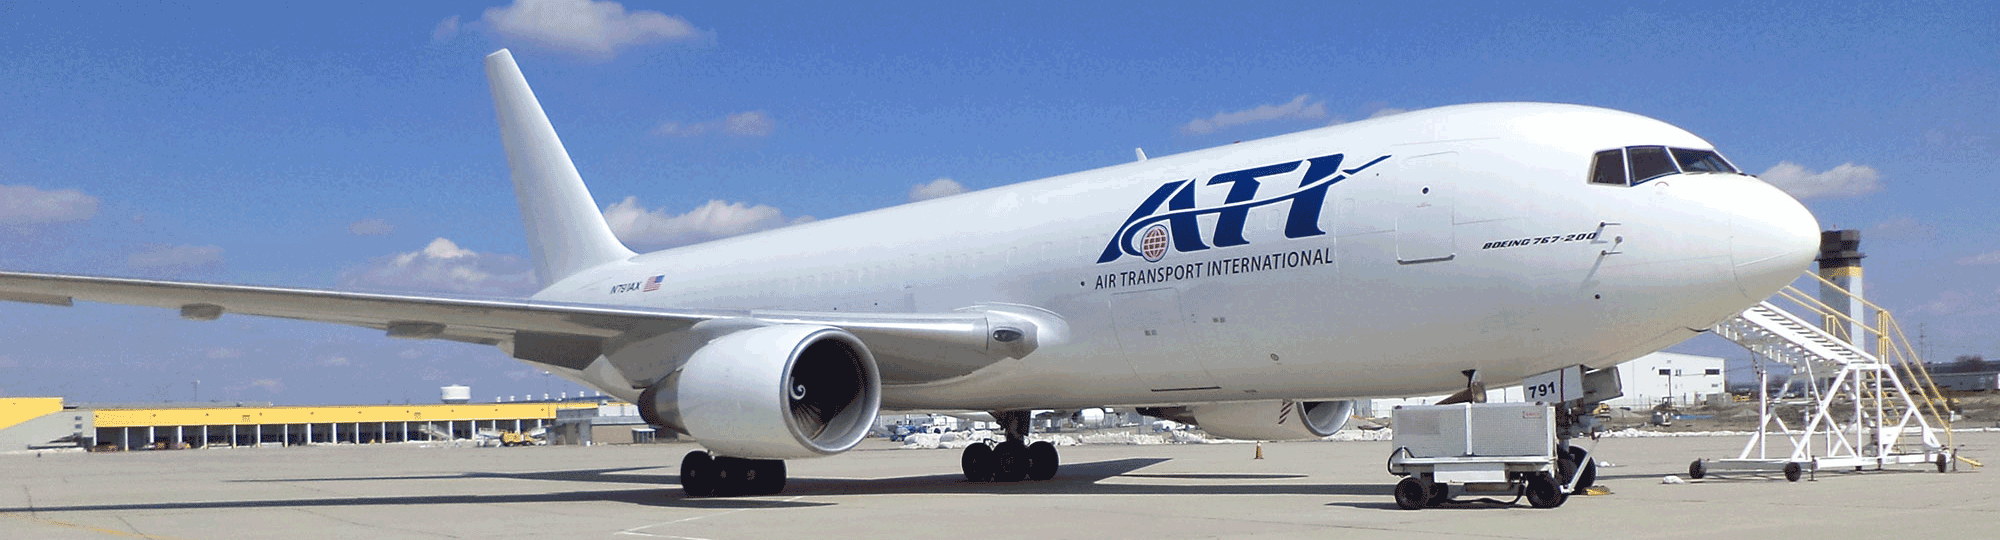 Air Transport International, Inc.